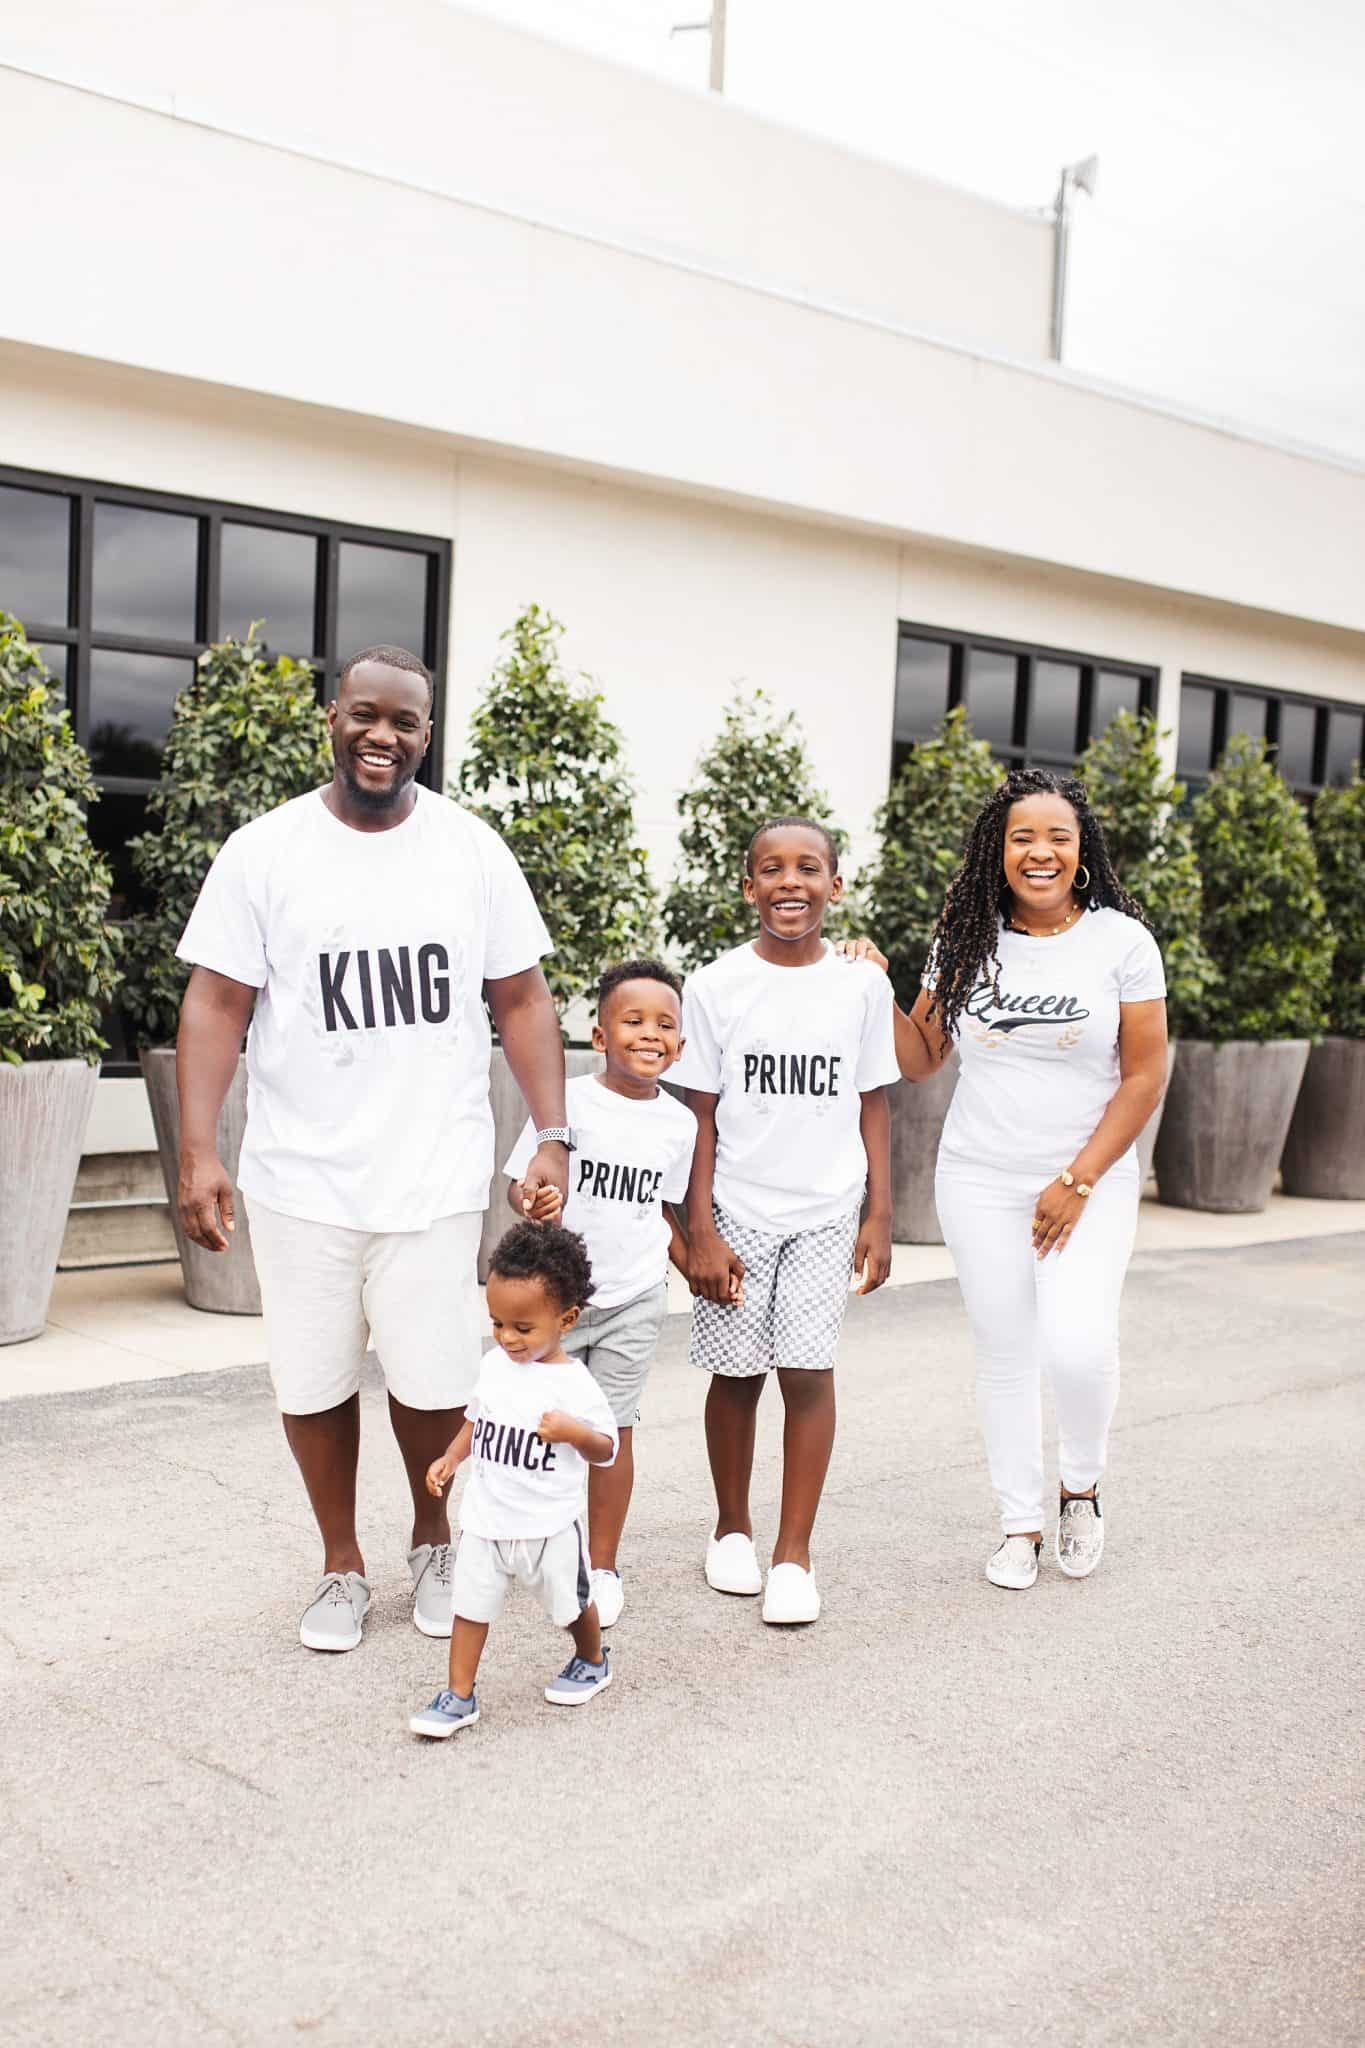 Home Building by popular Dallas lifestyle blog, Glamorous Versatility: image of a family walking together outside and wearing all white outfits.